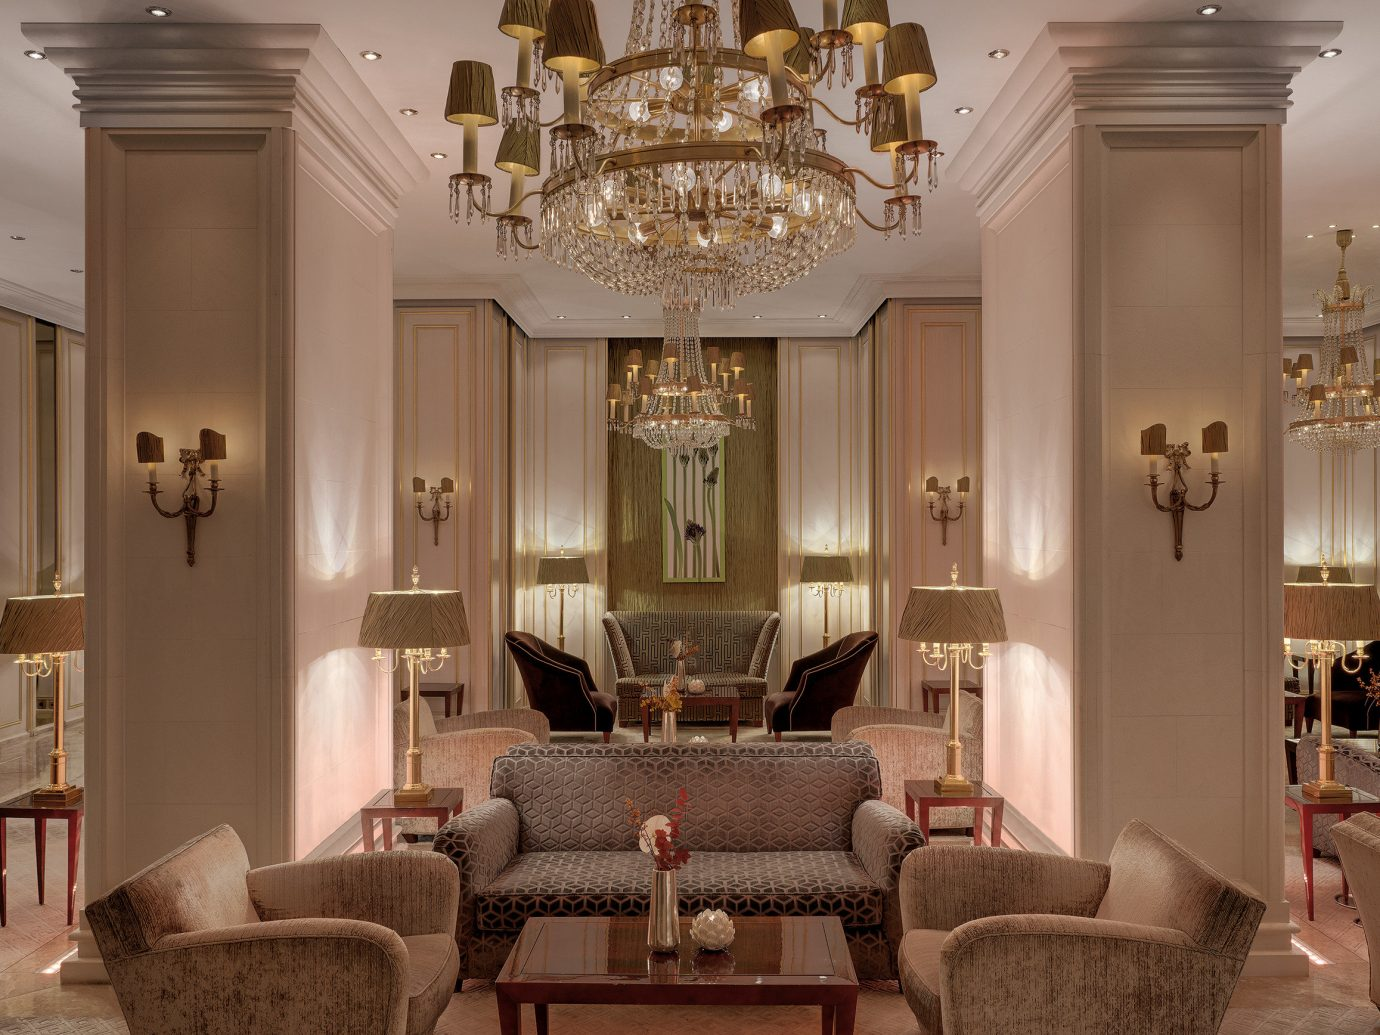 europe Germany Hotels Munich indoor wall room floor living room chair interior design ceiling Living Lobby home furniture dining room window interior designer decorated area